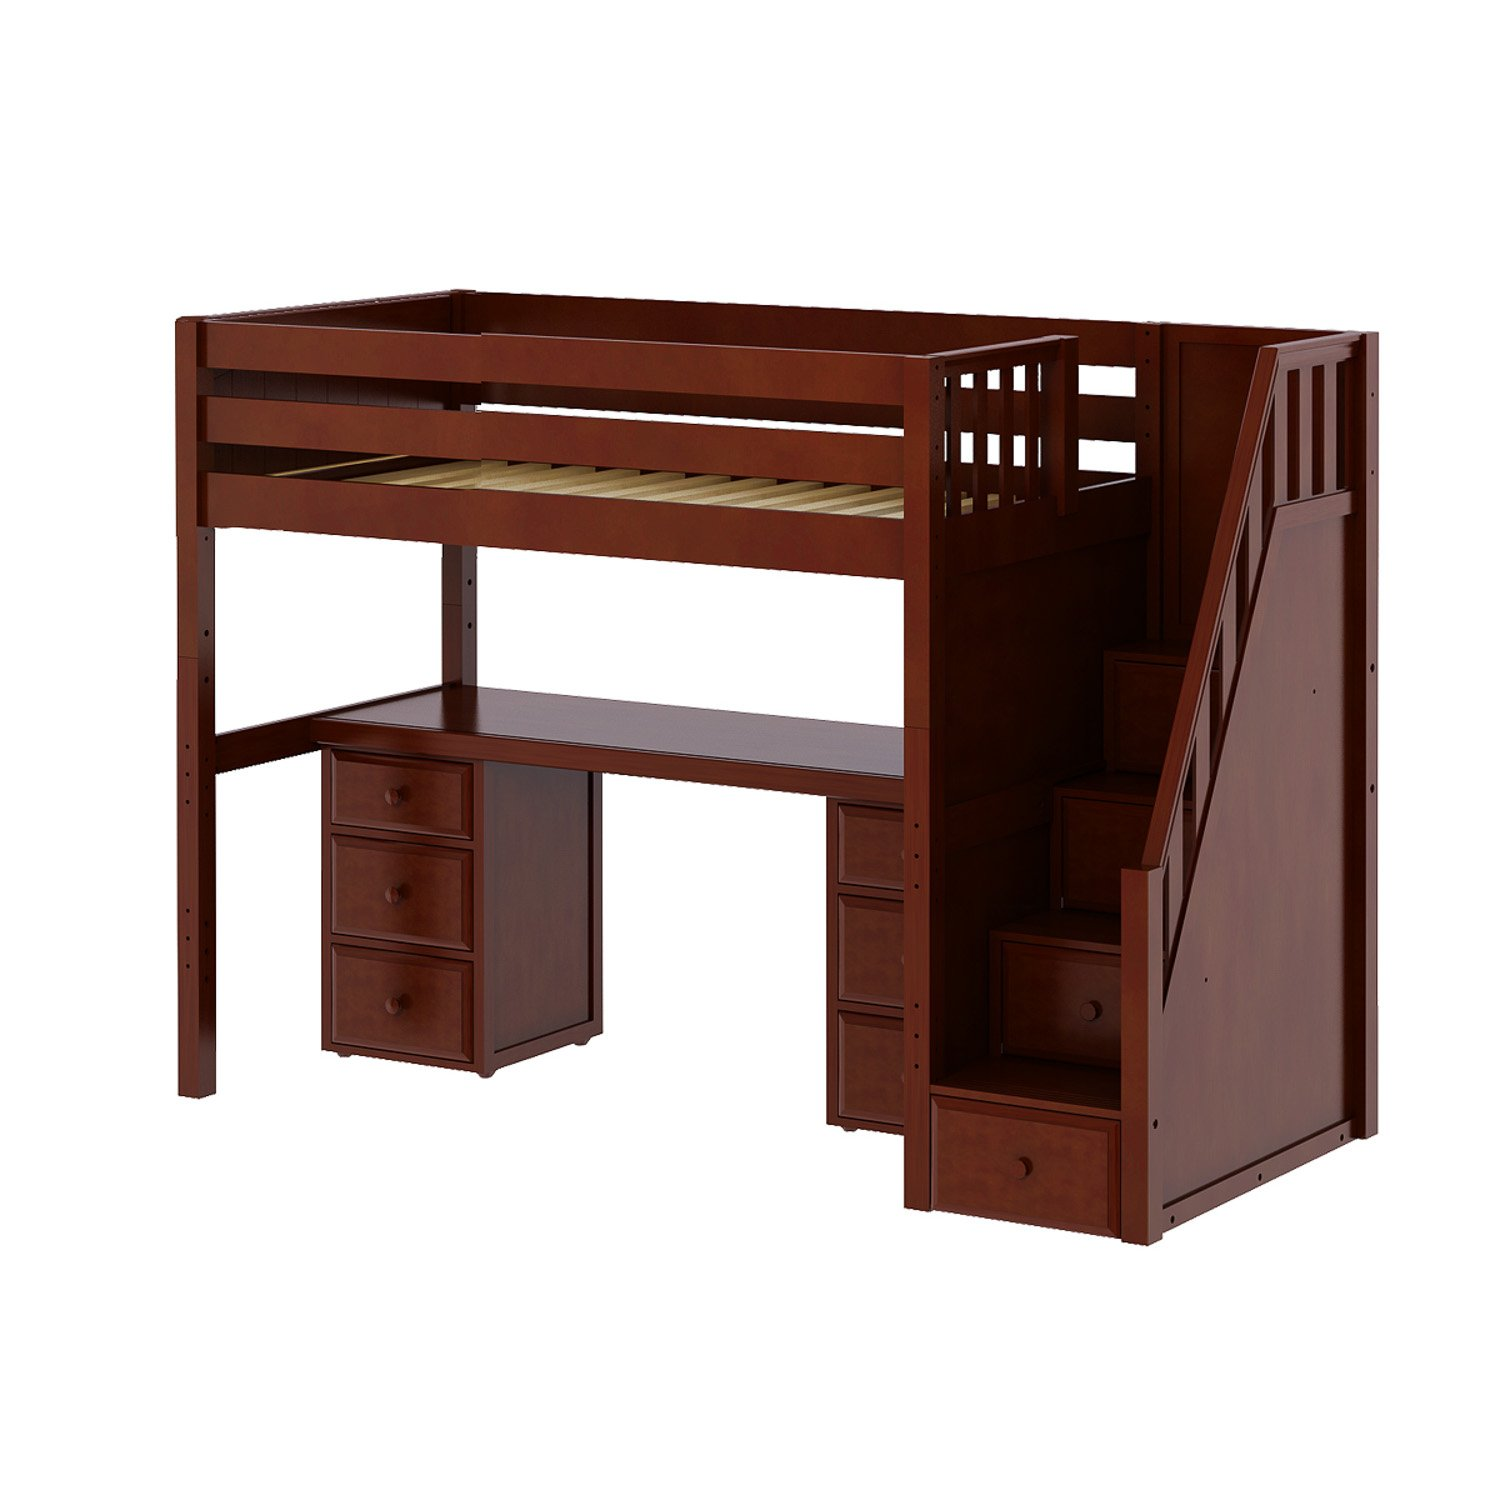 Maxtrix Solid Hardwood Twin-Size Low Loft Bed with Storage Staircase Entry, Integrated Desk, and 2x 3 1/2 Drawer Dresser, Chestnut